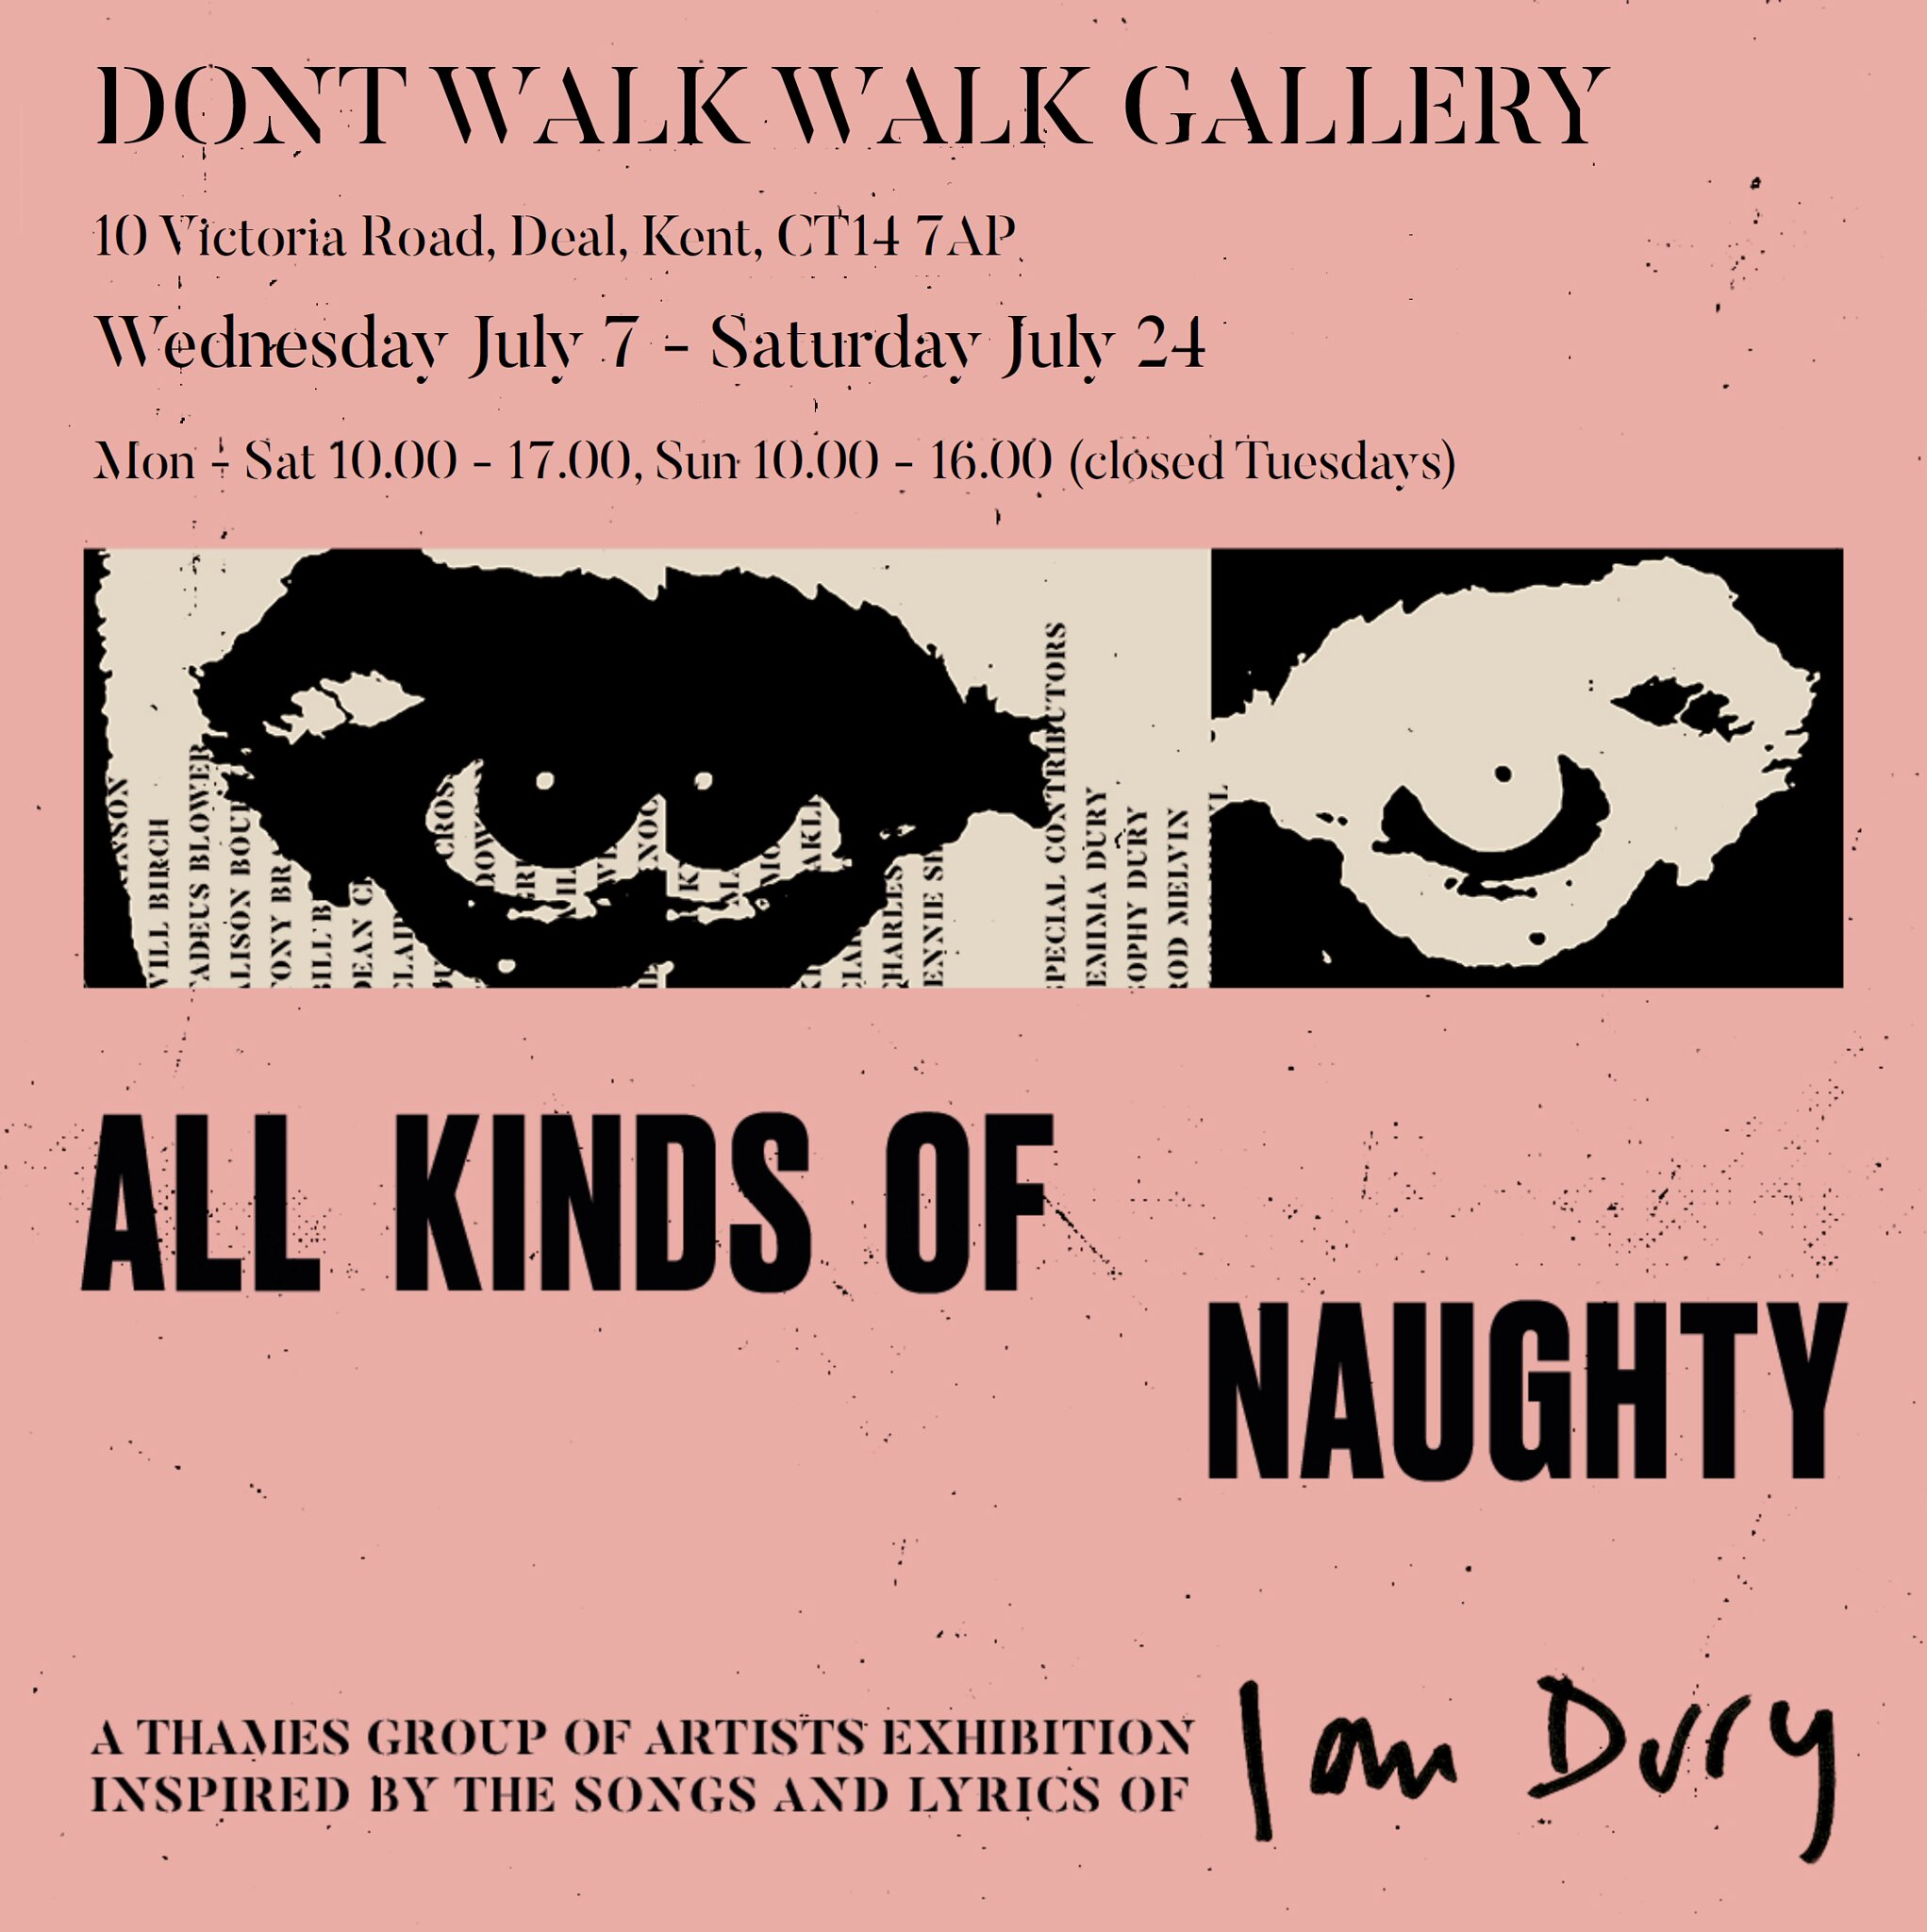 All Kinds Of Naughty: Don't Walk Walk